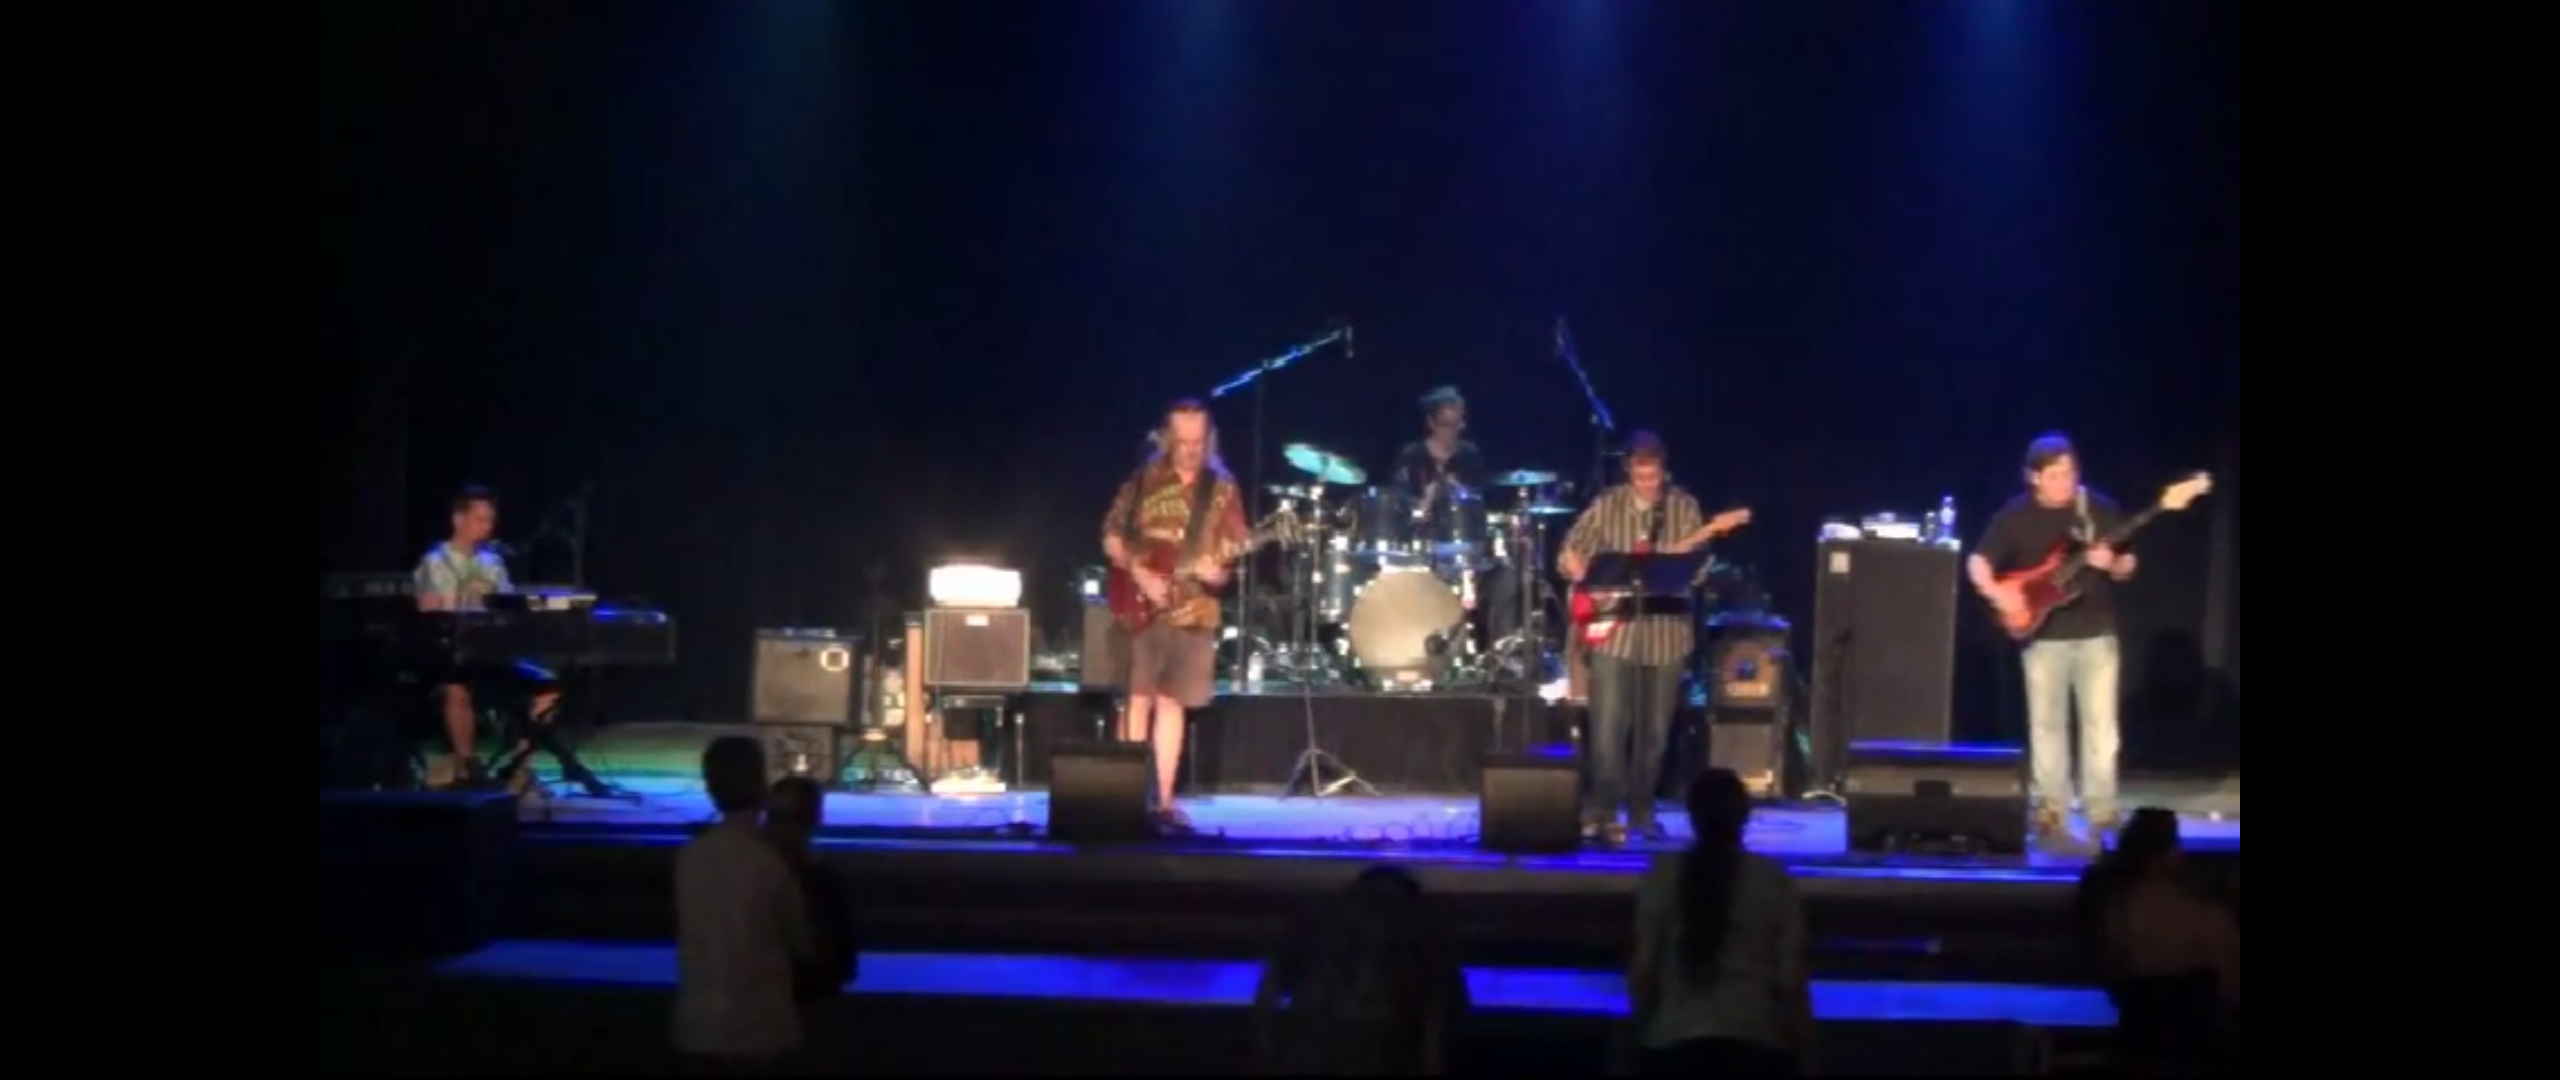 Ice Petal Flowers at the Oneonta Theater July 29, 2016